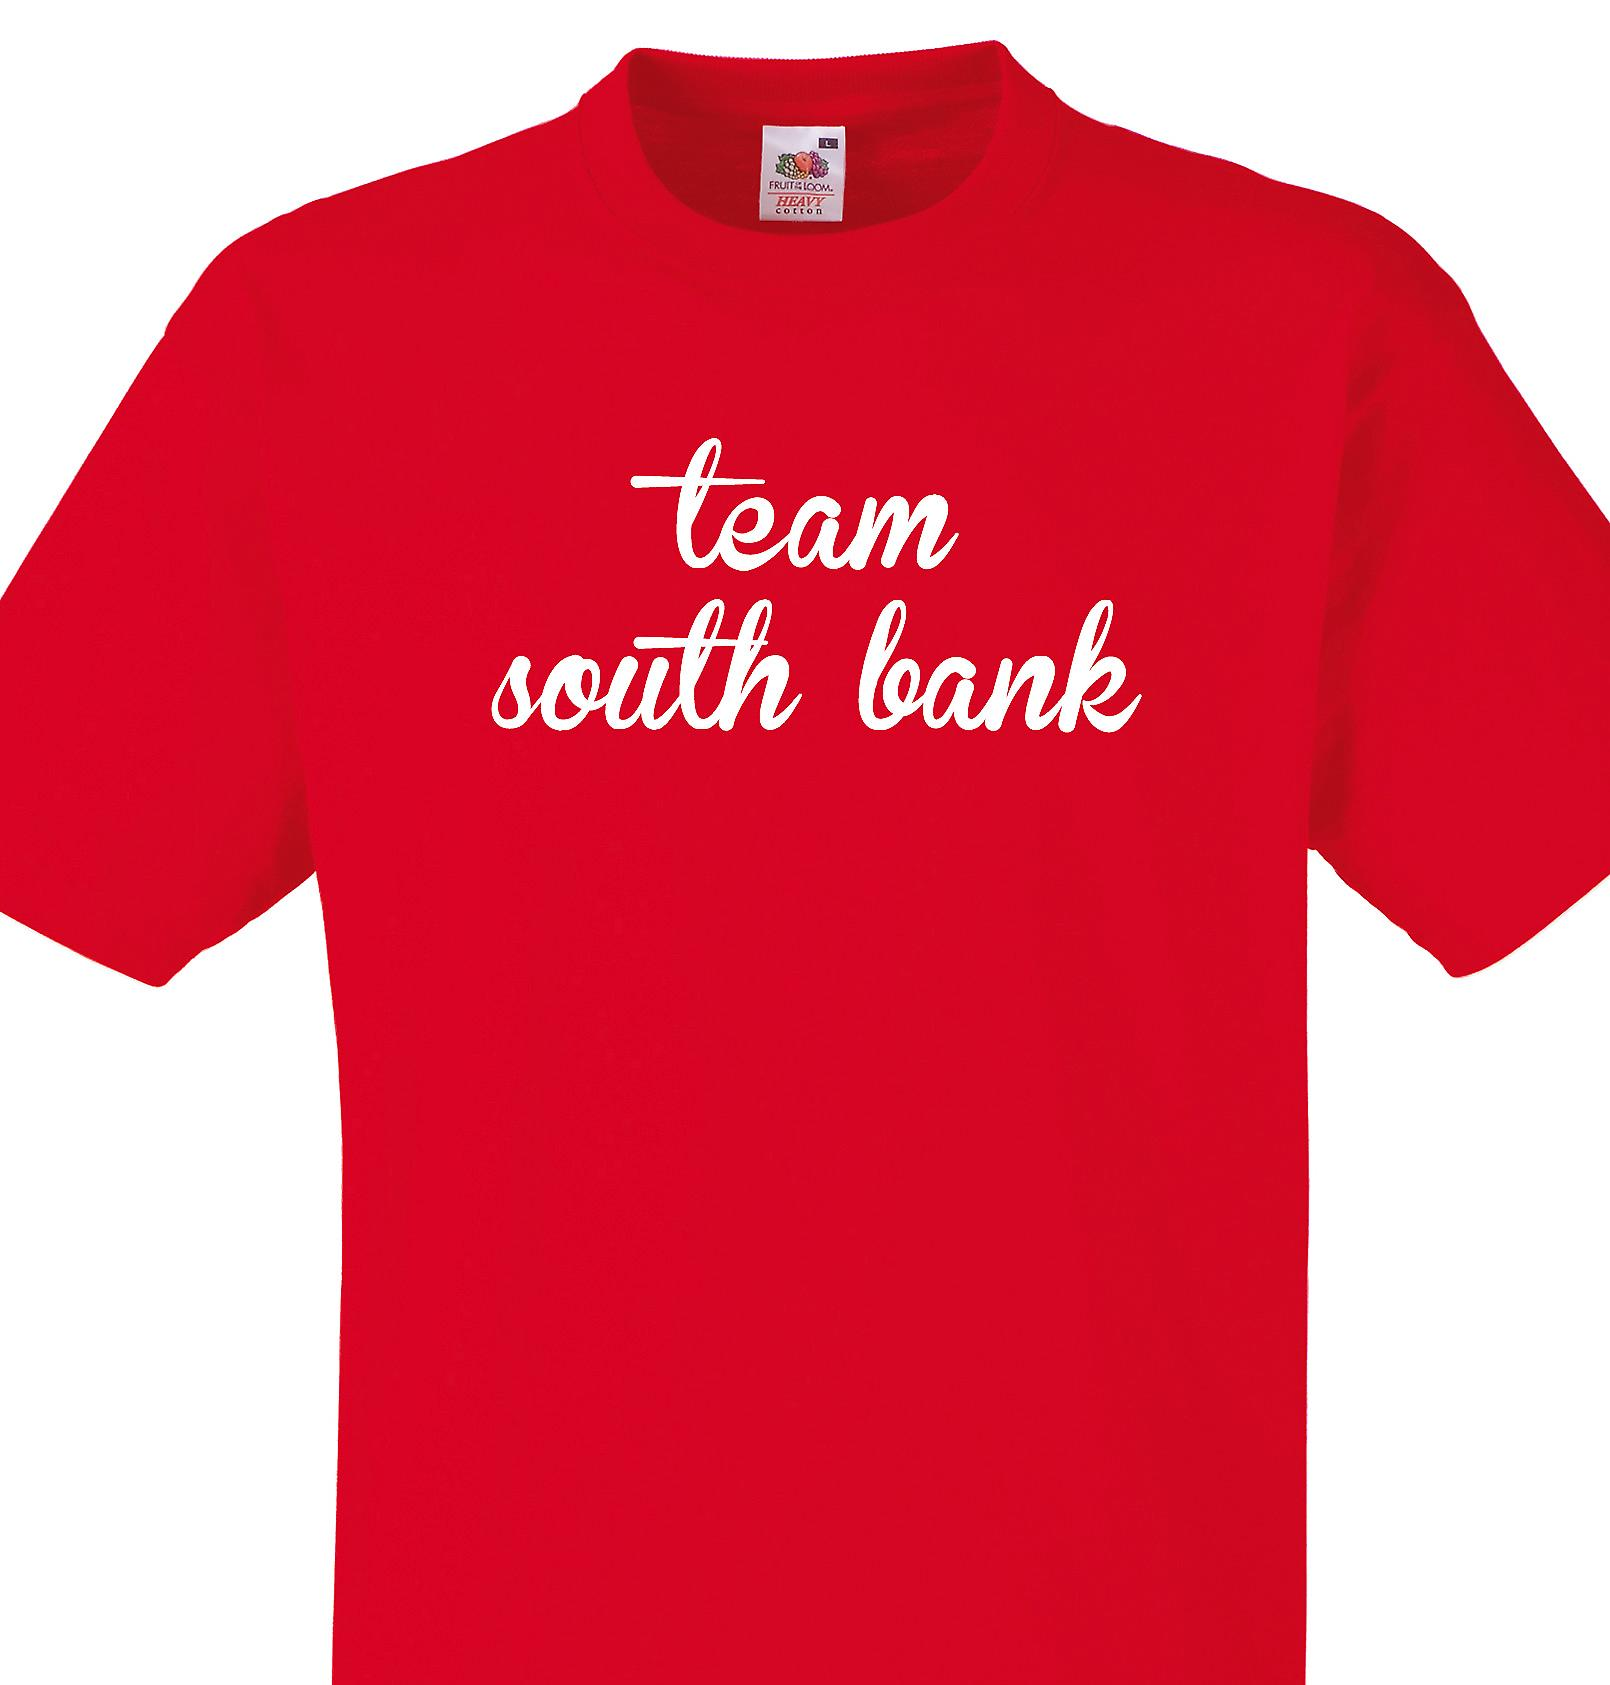 Team South bank Red T shirt